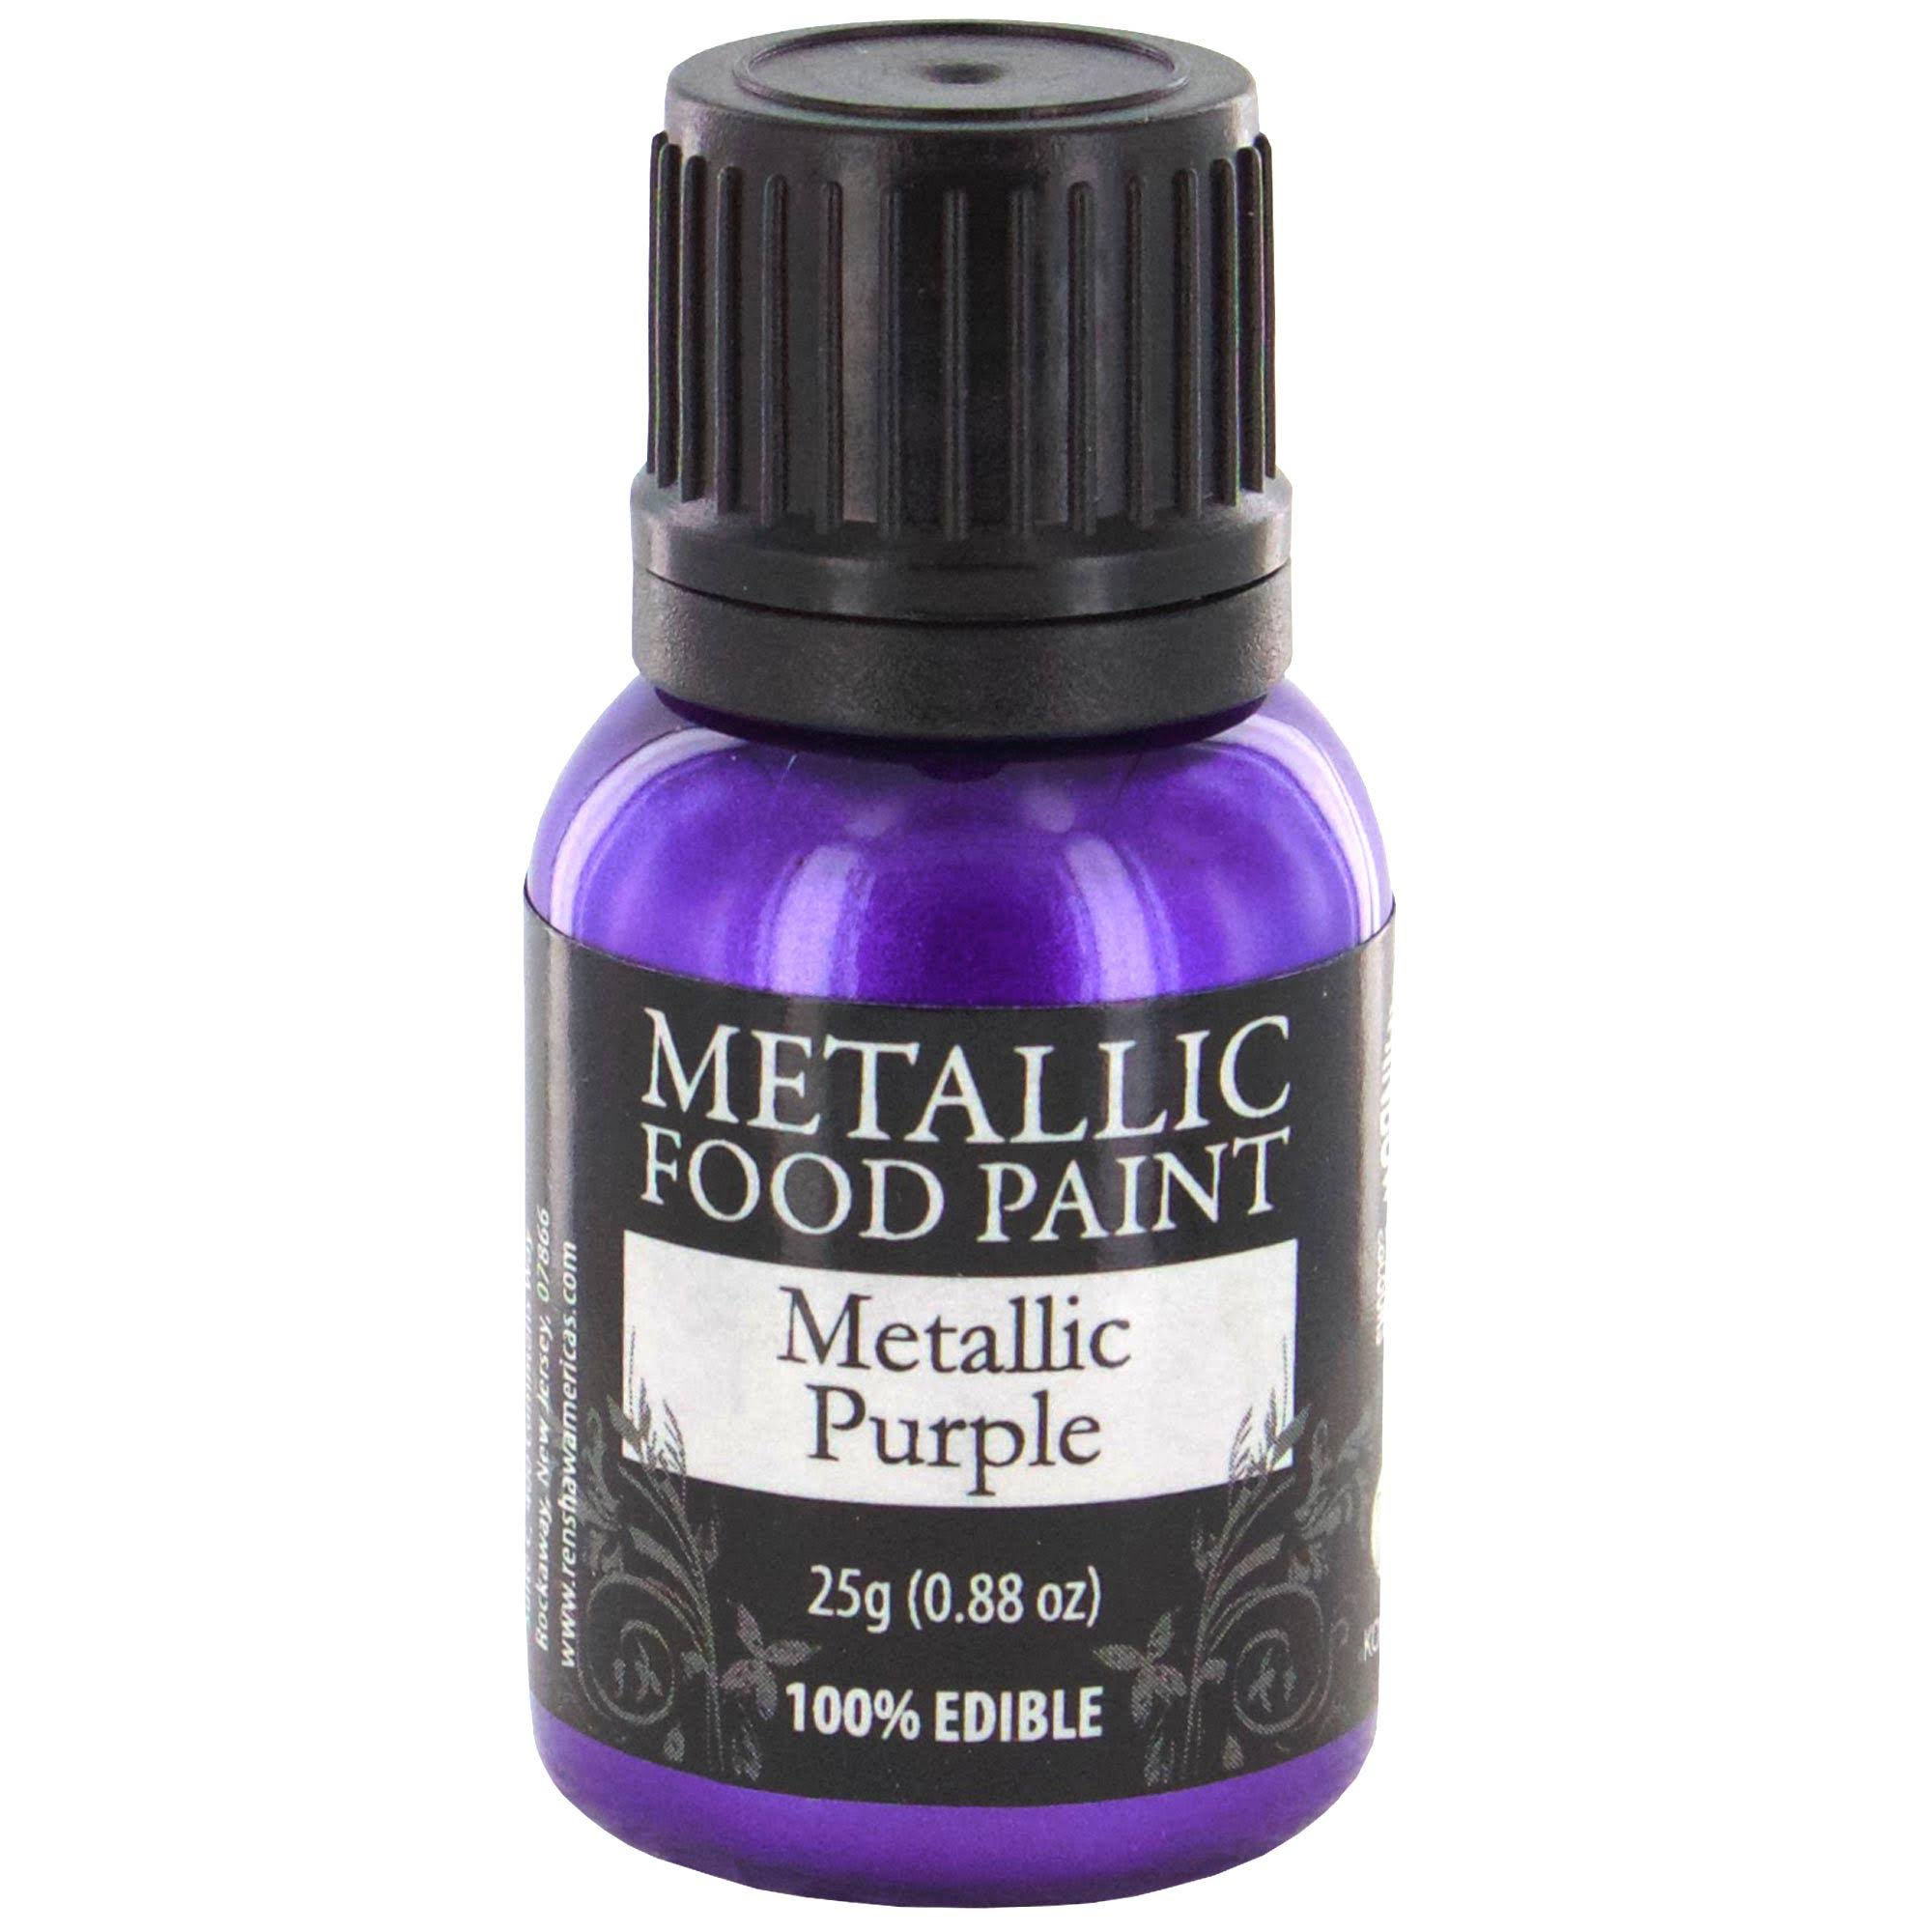 Rainbow Dust Metallic Food Paint - Metallic Purple